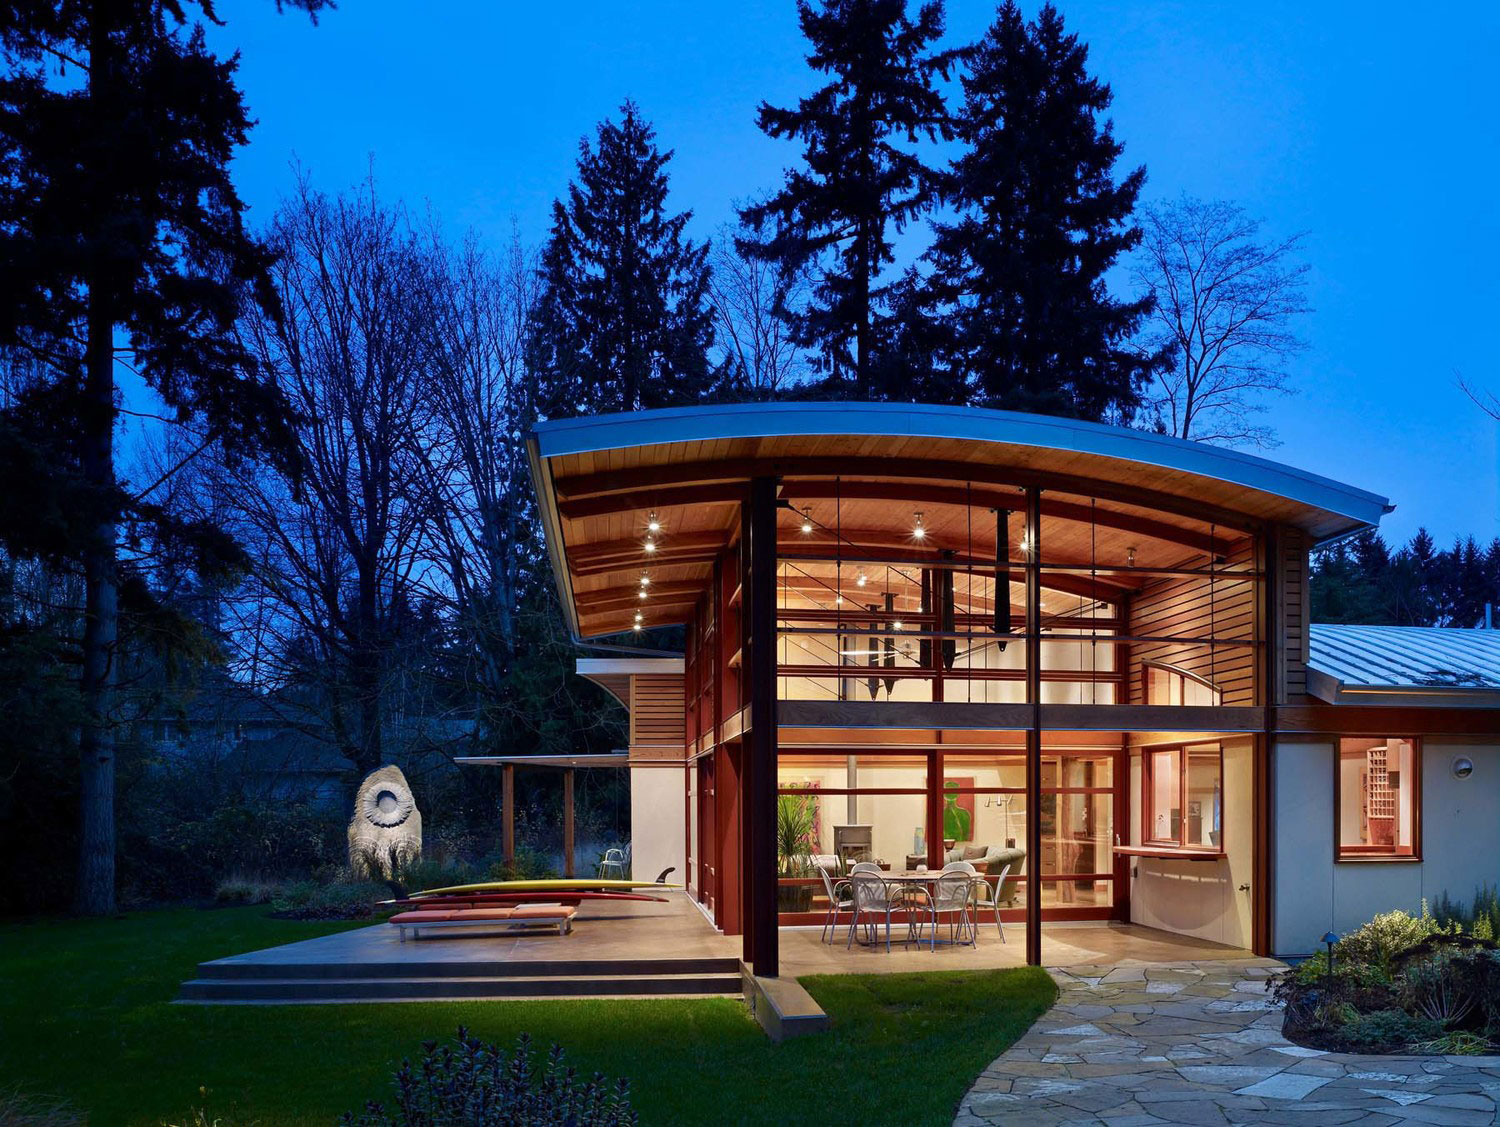 Garden House by Balance Associates Architects